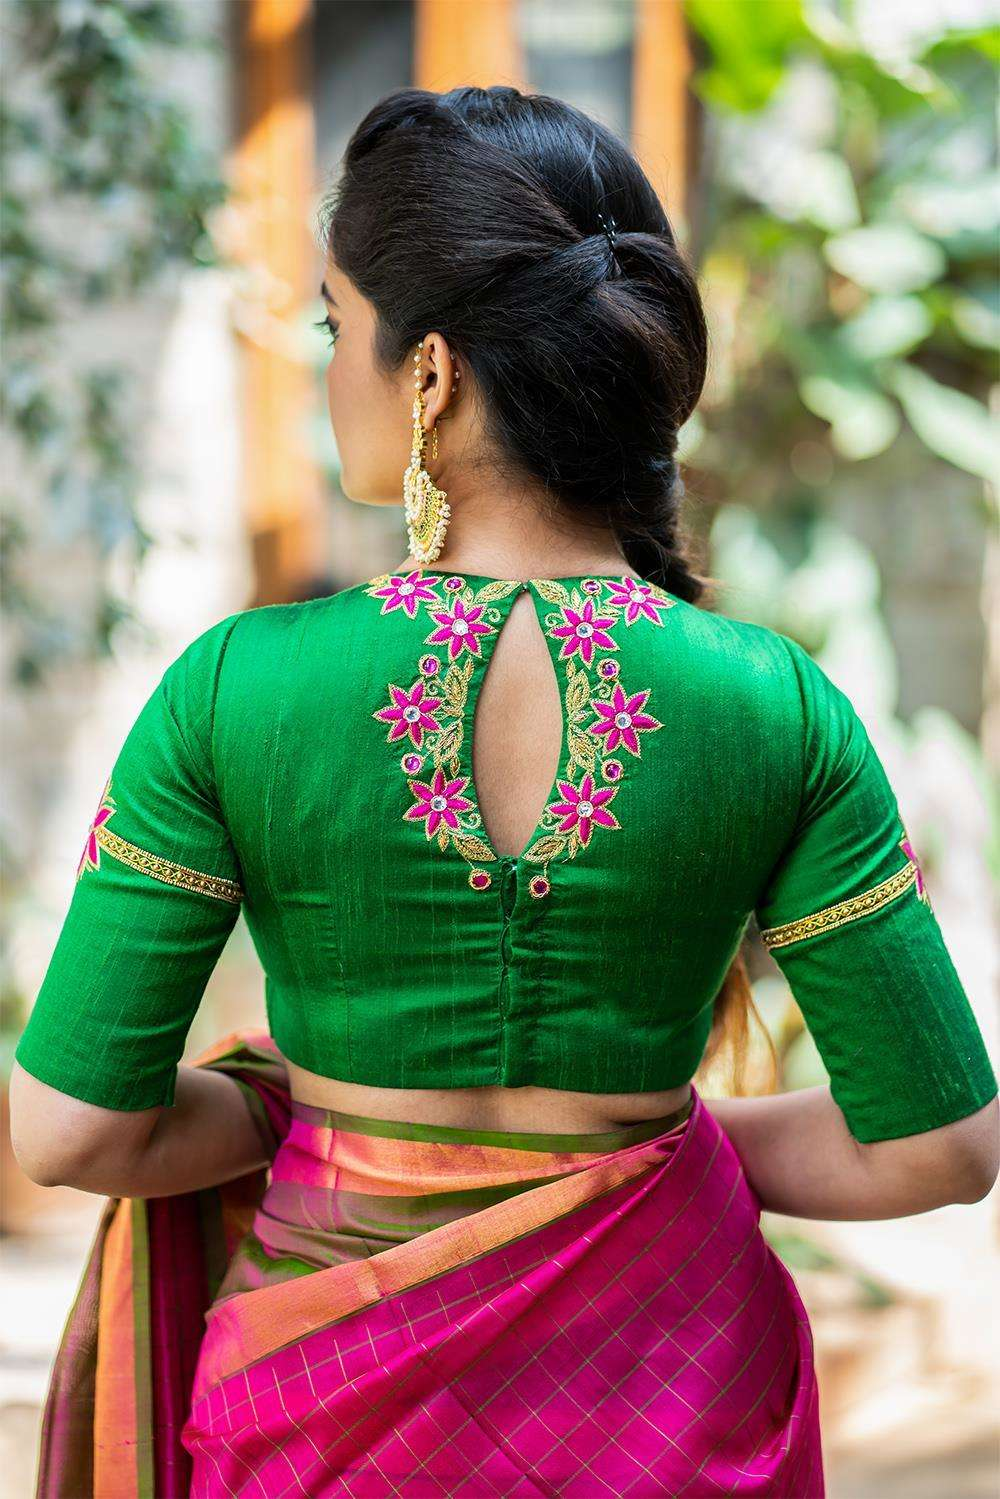 Jhansi - Hand embroidered blouse - House of Blouse